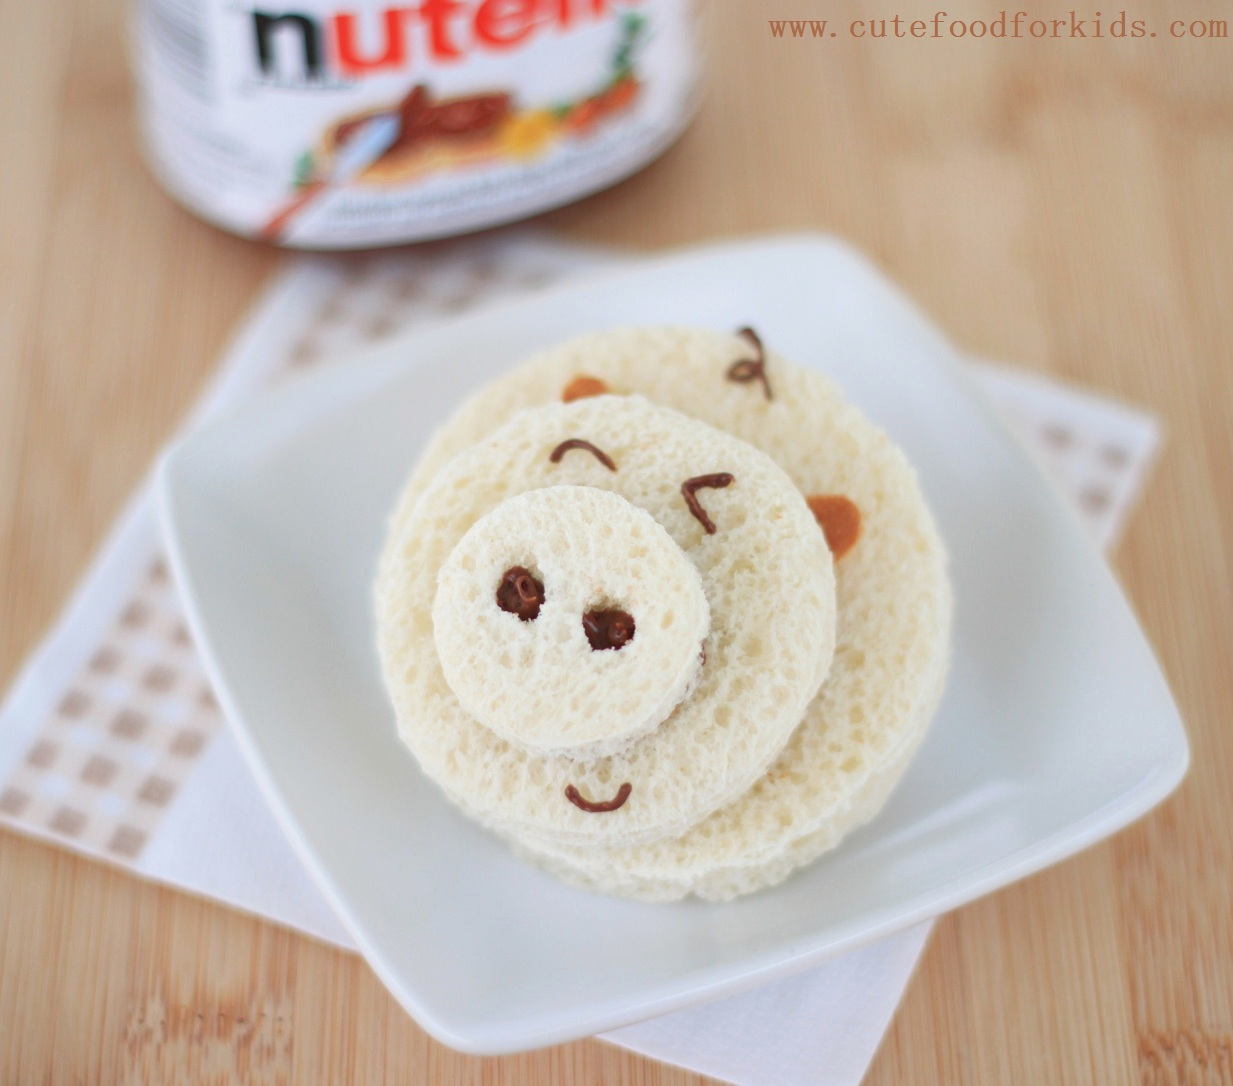 Piggy Nutella Sandwich (1)